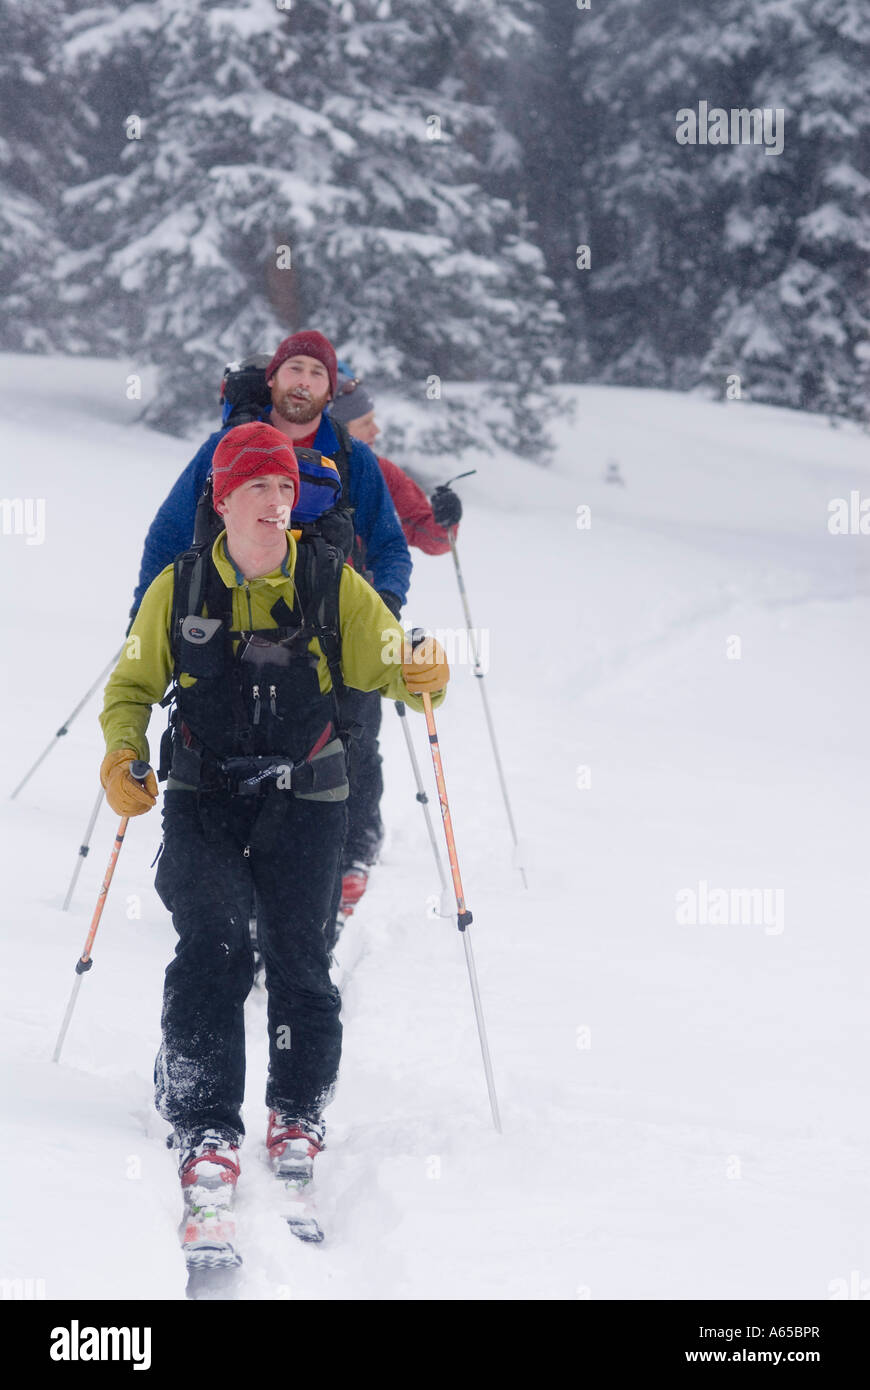 Three crosscountry skiers in the backcountry, Colorado - Stock Image